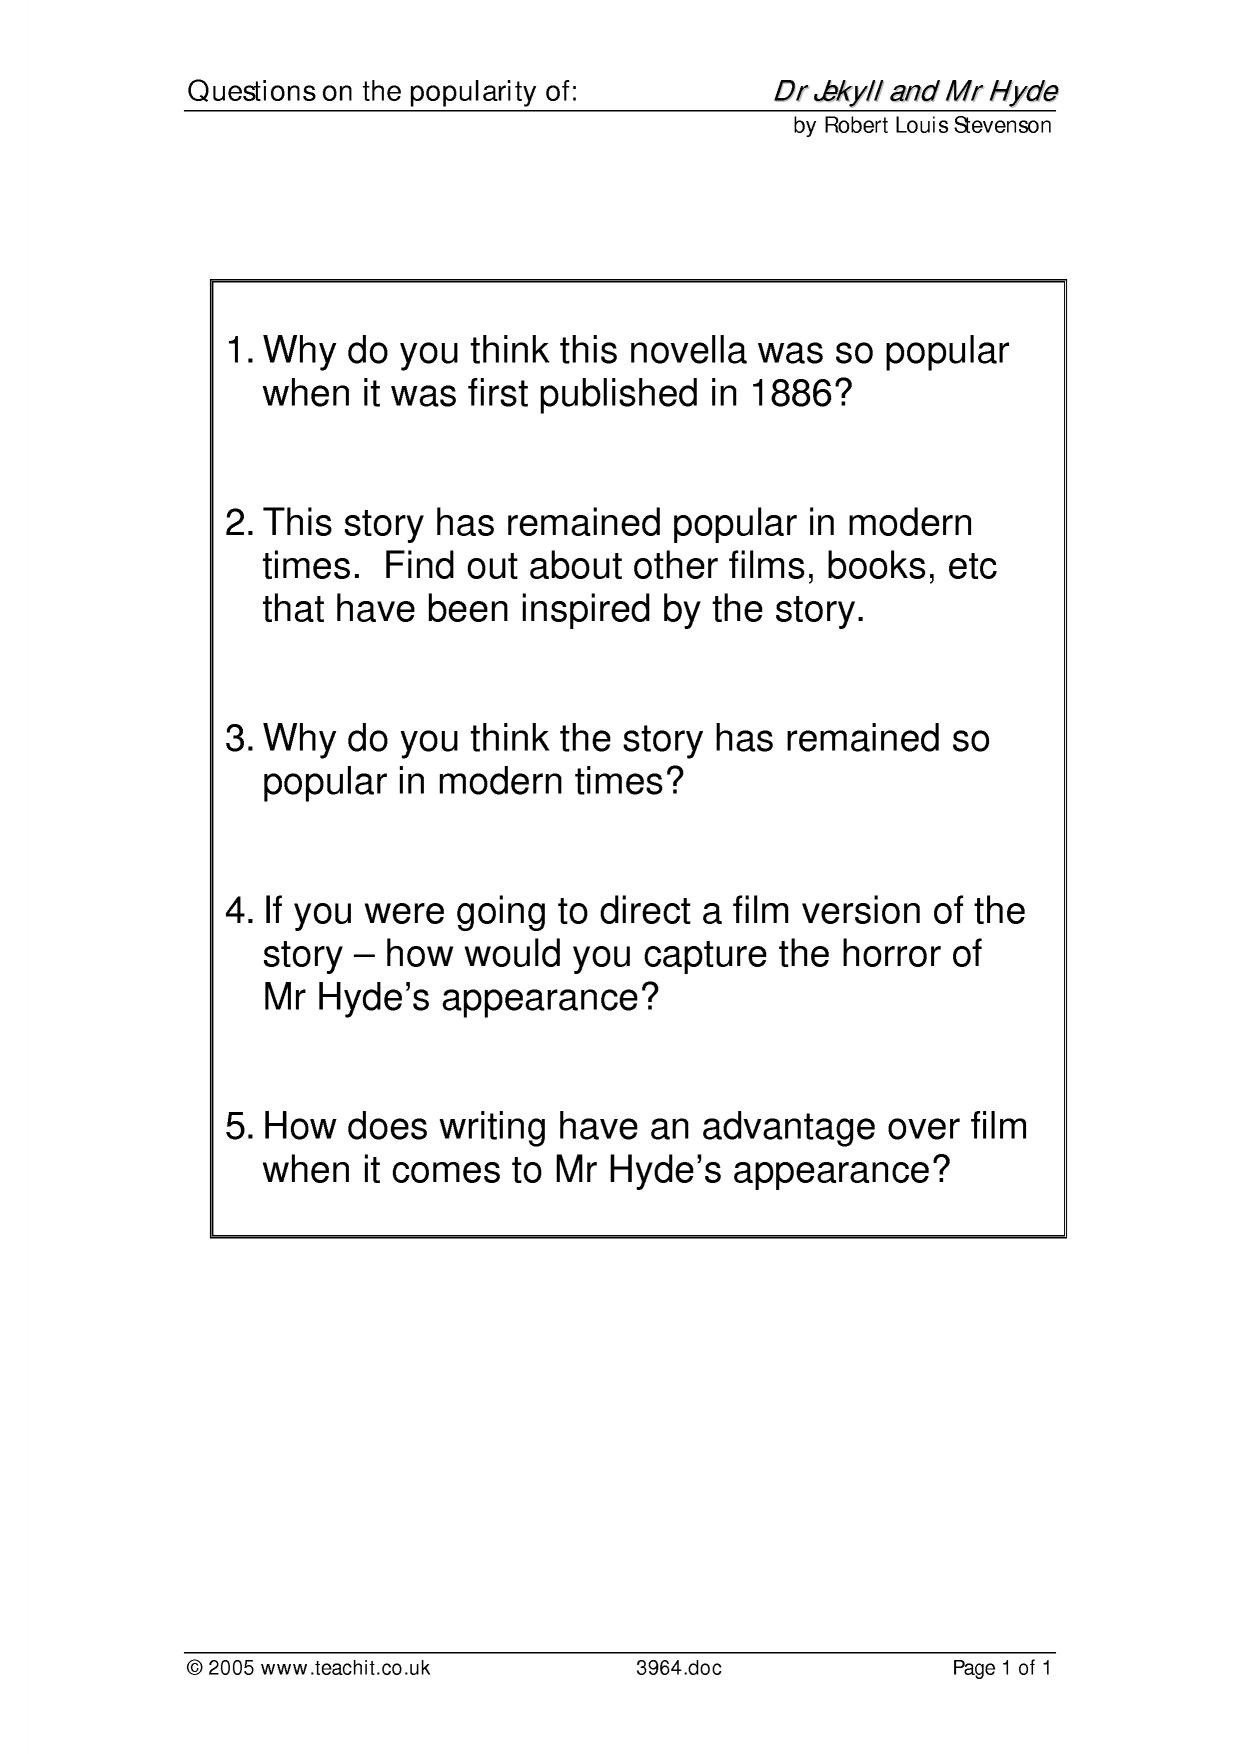 dr jekyll mr hyde essay questions Suggested essay topics and project ideas for dr jekyll and mr hyde part of a detailed lesson plan by bookragscom.